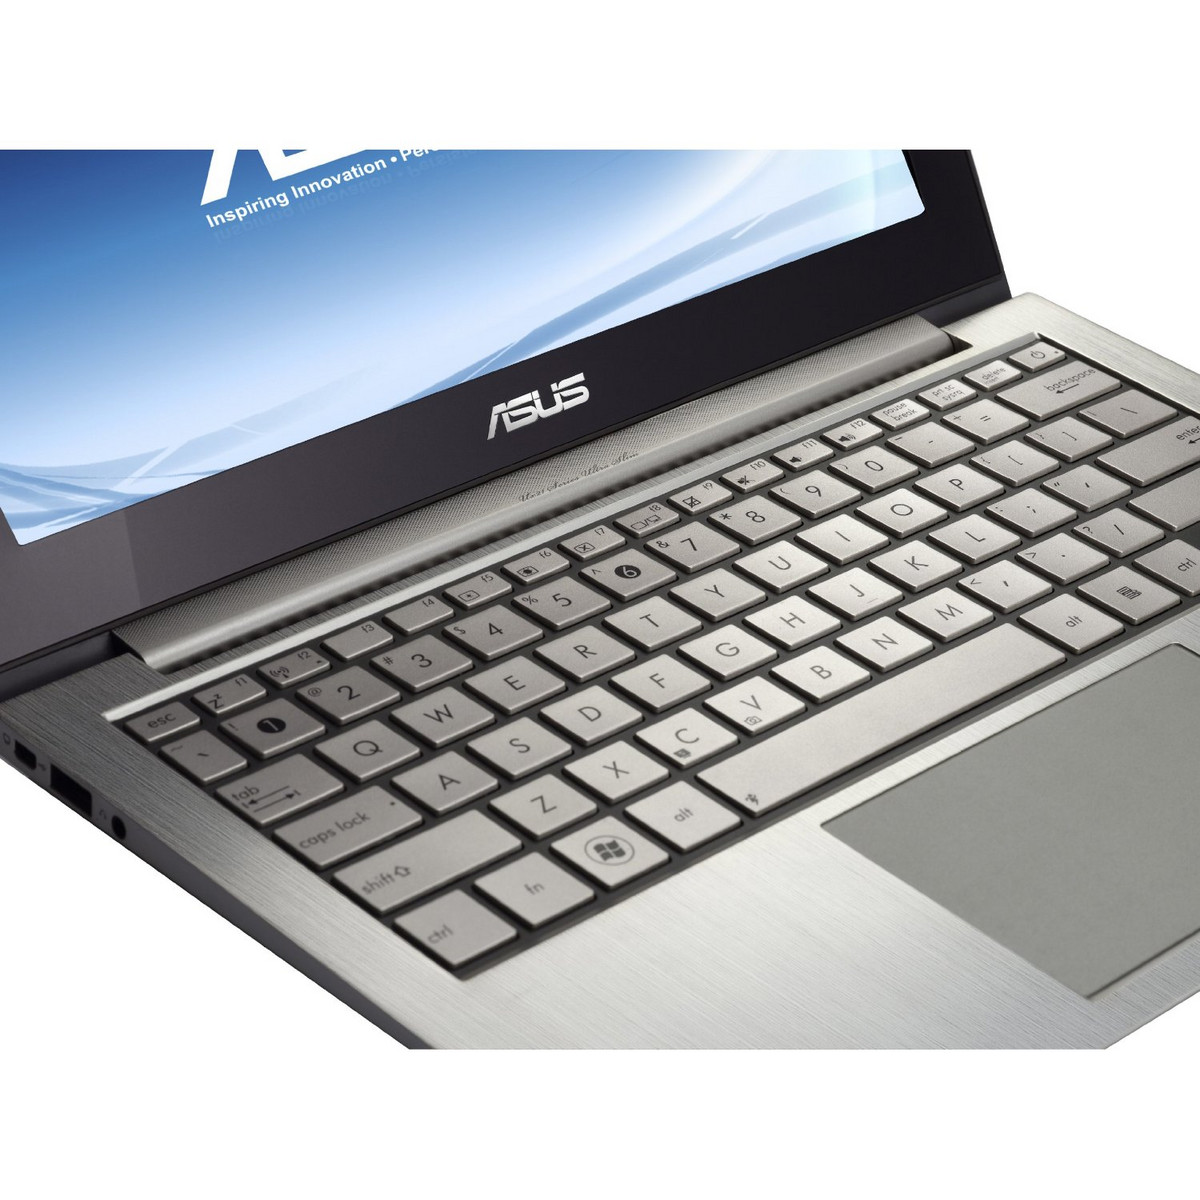 Asus Zenbook UX21E-DH71 - Notebookcheck.net External Reviews